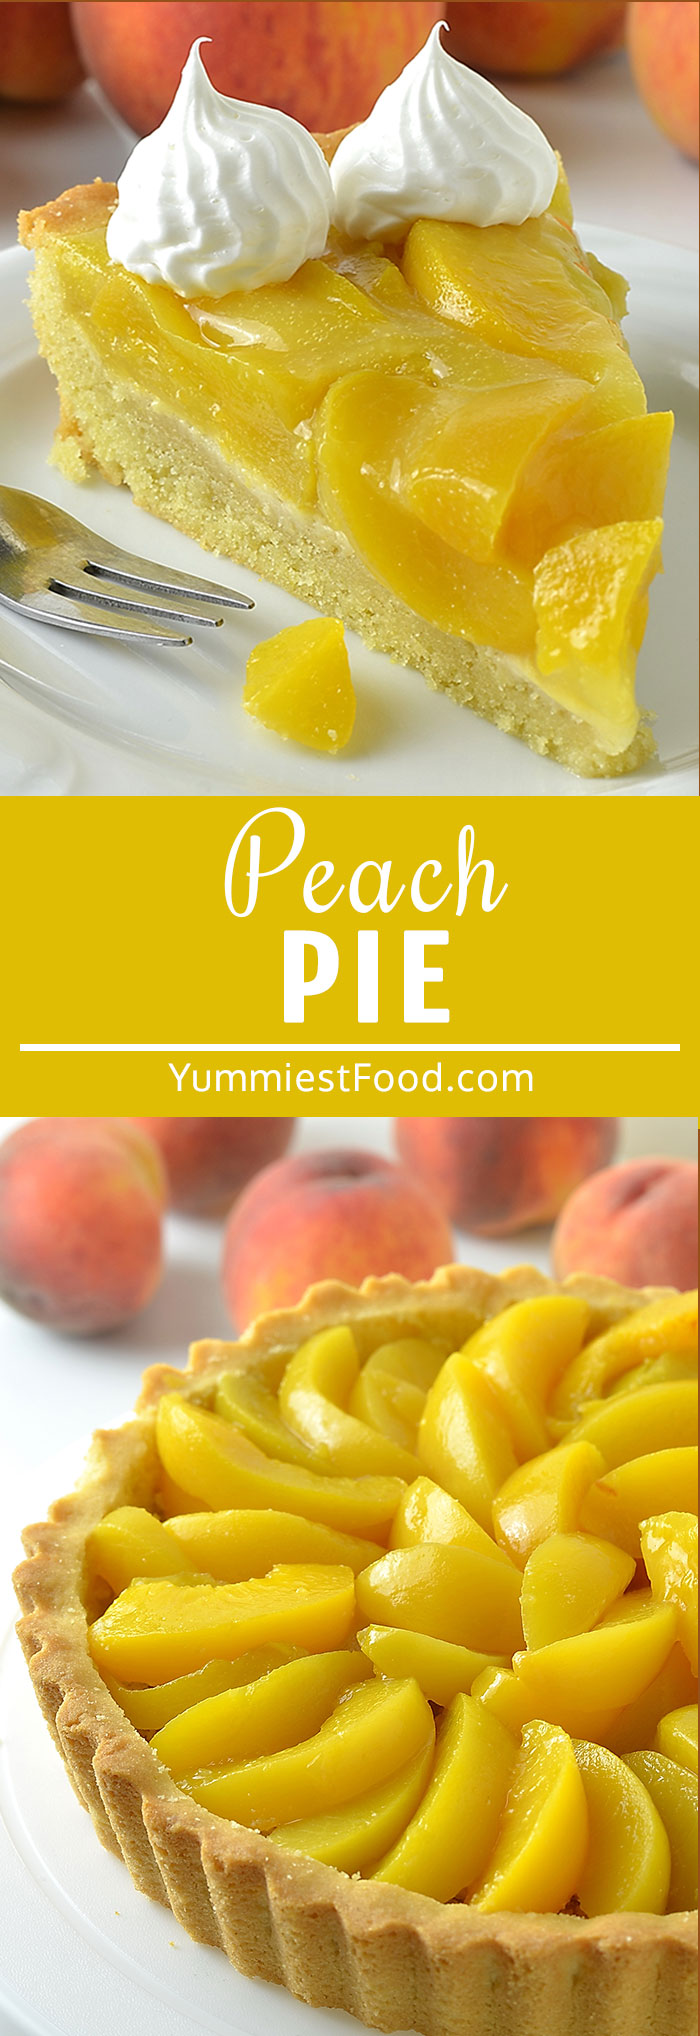 Peach Pie is sweet, creamy and so delicious dessert perfect for any time of the year! Make it with pastry shell, fresh or canned peaches, Peach Jell-O and topped with whipped cream!